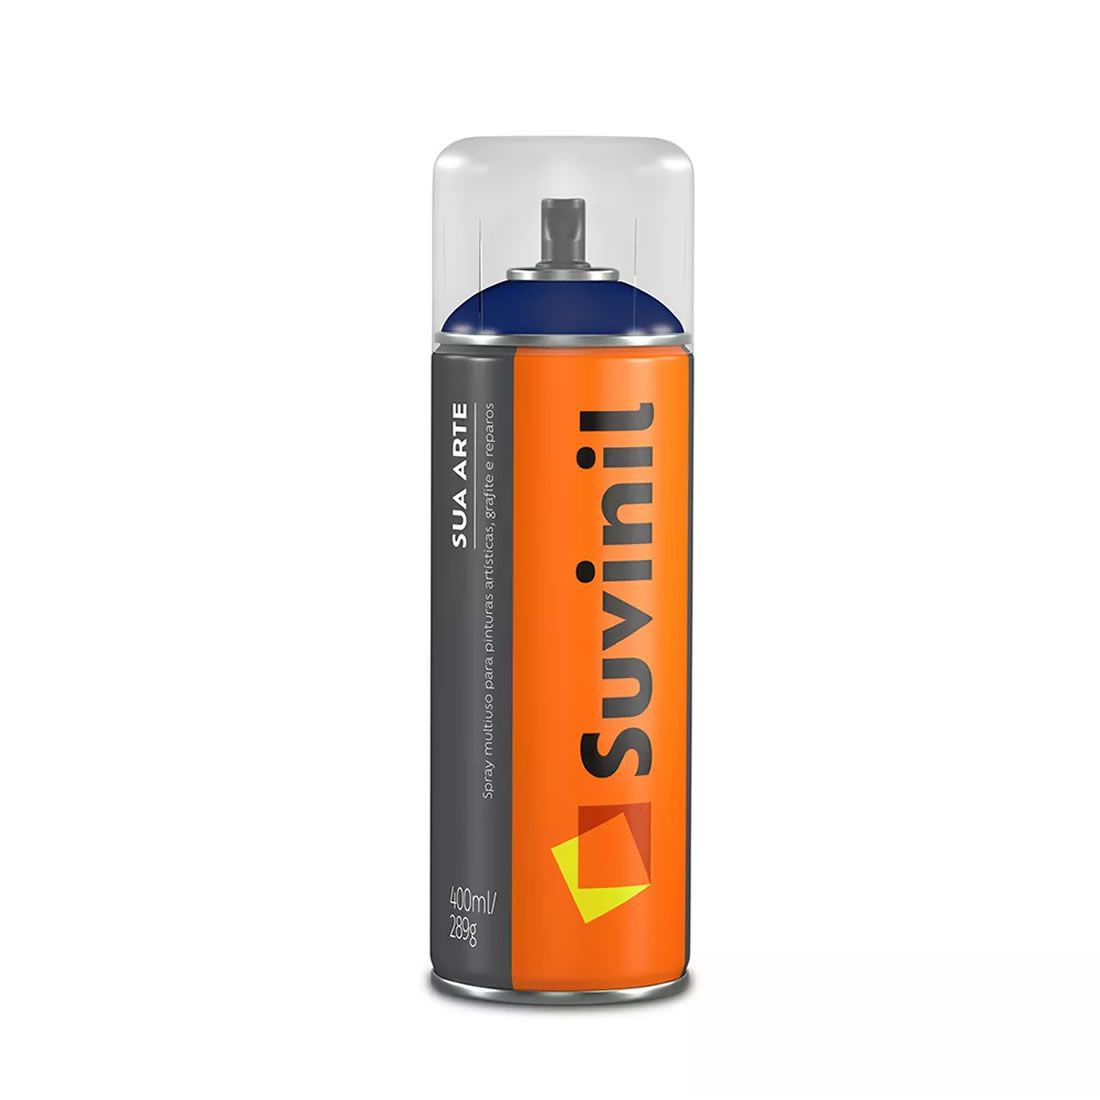 Tinta Spray Multiuso Suvinil 400ml Aluminio Brilhante